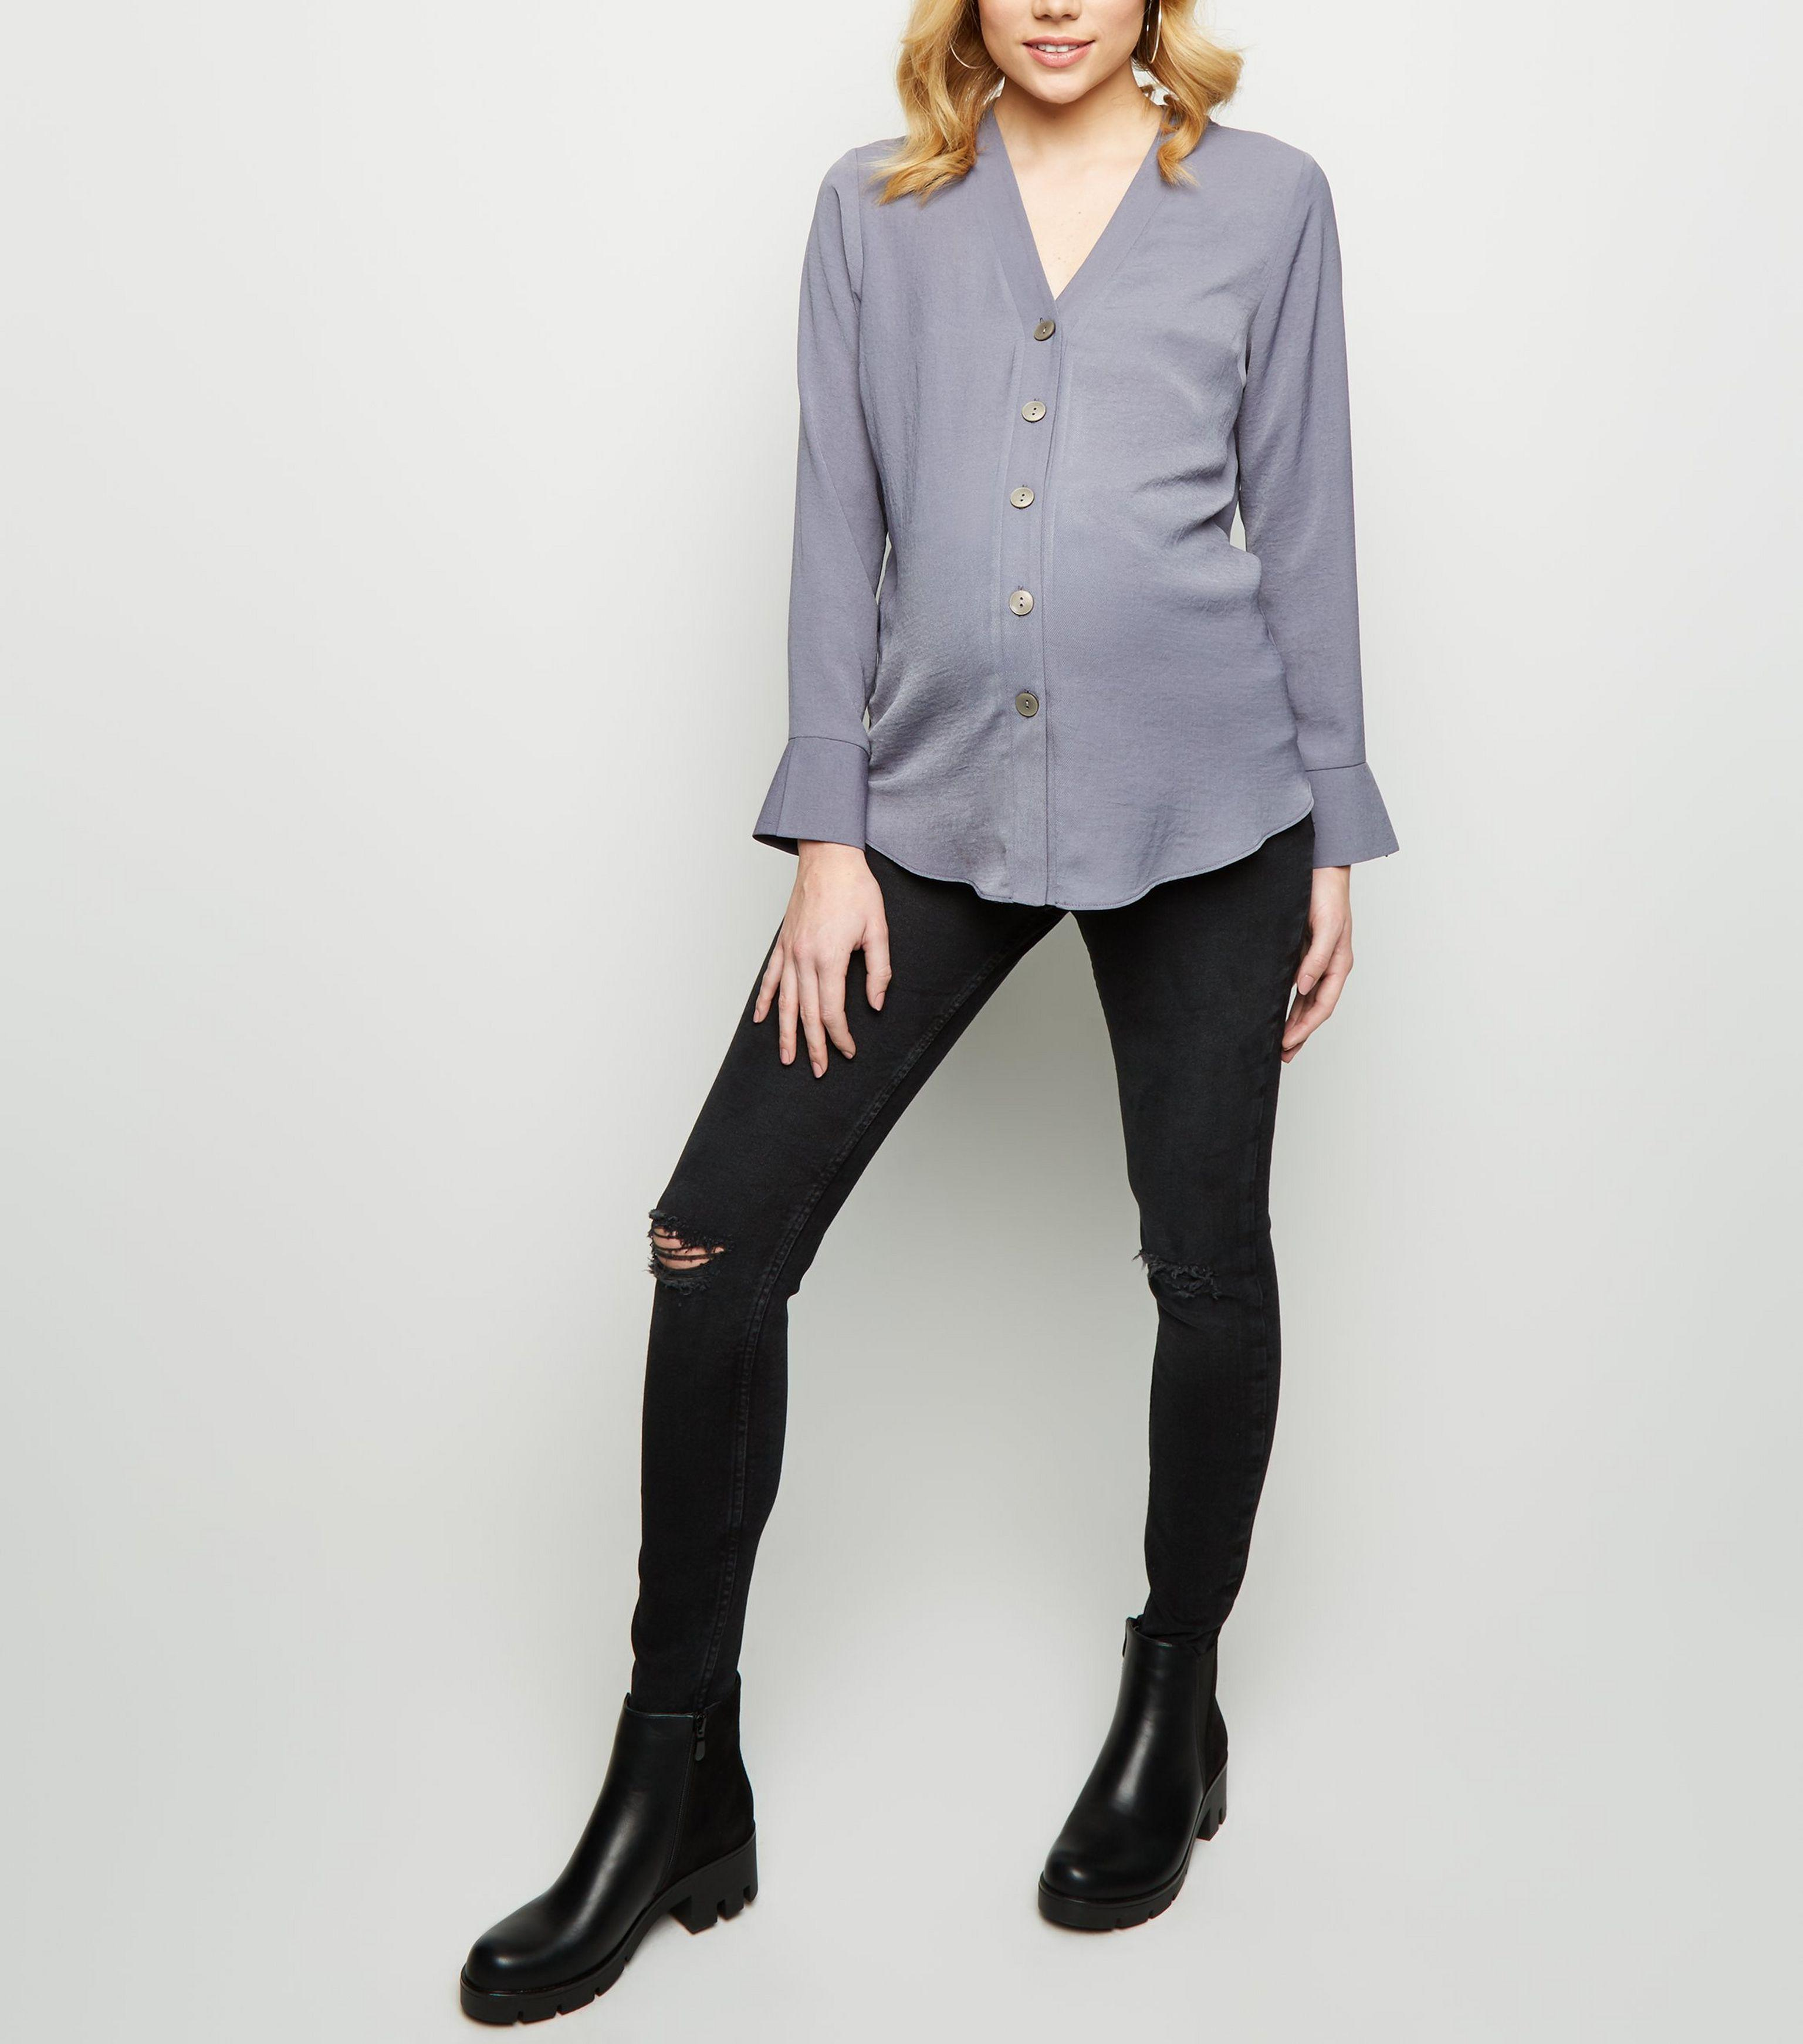 562b3d8e159cc New Look Maternity Black Ripped Knee Over Bump Skinny Jeans in Black ...